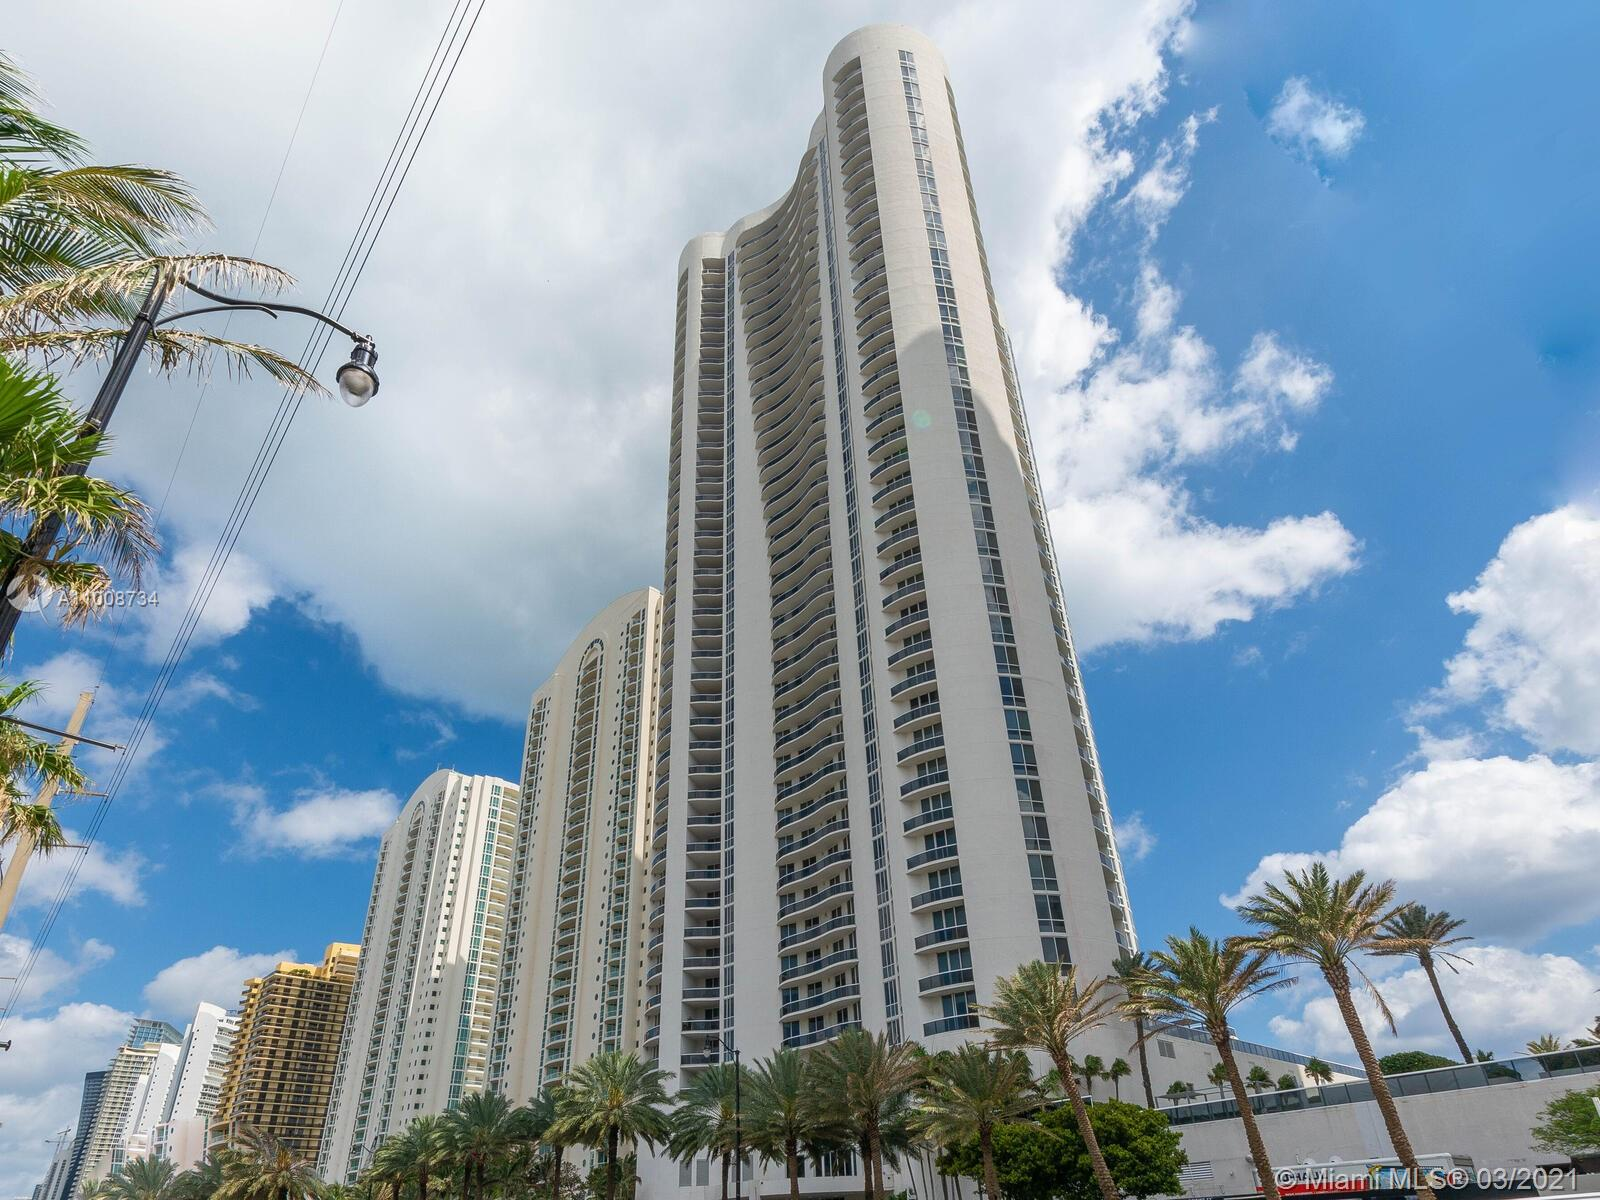 You'll love this oceanfront stunning condo located on the 40th floor of Trump Towers 1 in Sunny Isles Beach and a few blocks from Norman S. Edelcup/Sunny Isles Beach K-8 school. This 3-bedroom, 3.5 bathroom turn key condo has 3 balconies—giving you almost 3000 sq. ft. of spacious elegance,marble floors throughout, and a modern gourmet kitchen. Every night, enjoy your wine overlooking the Intracoastal and city, then wake up to a spectacular sunrise over the ocean. All of this situated in a convenient, friendly neighborhood with outstanding schools, minutes from Bal Harbor and Aventura.